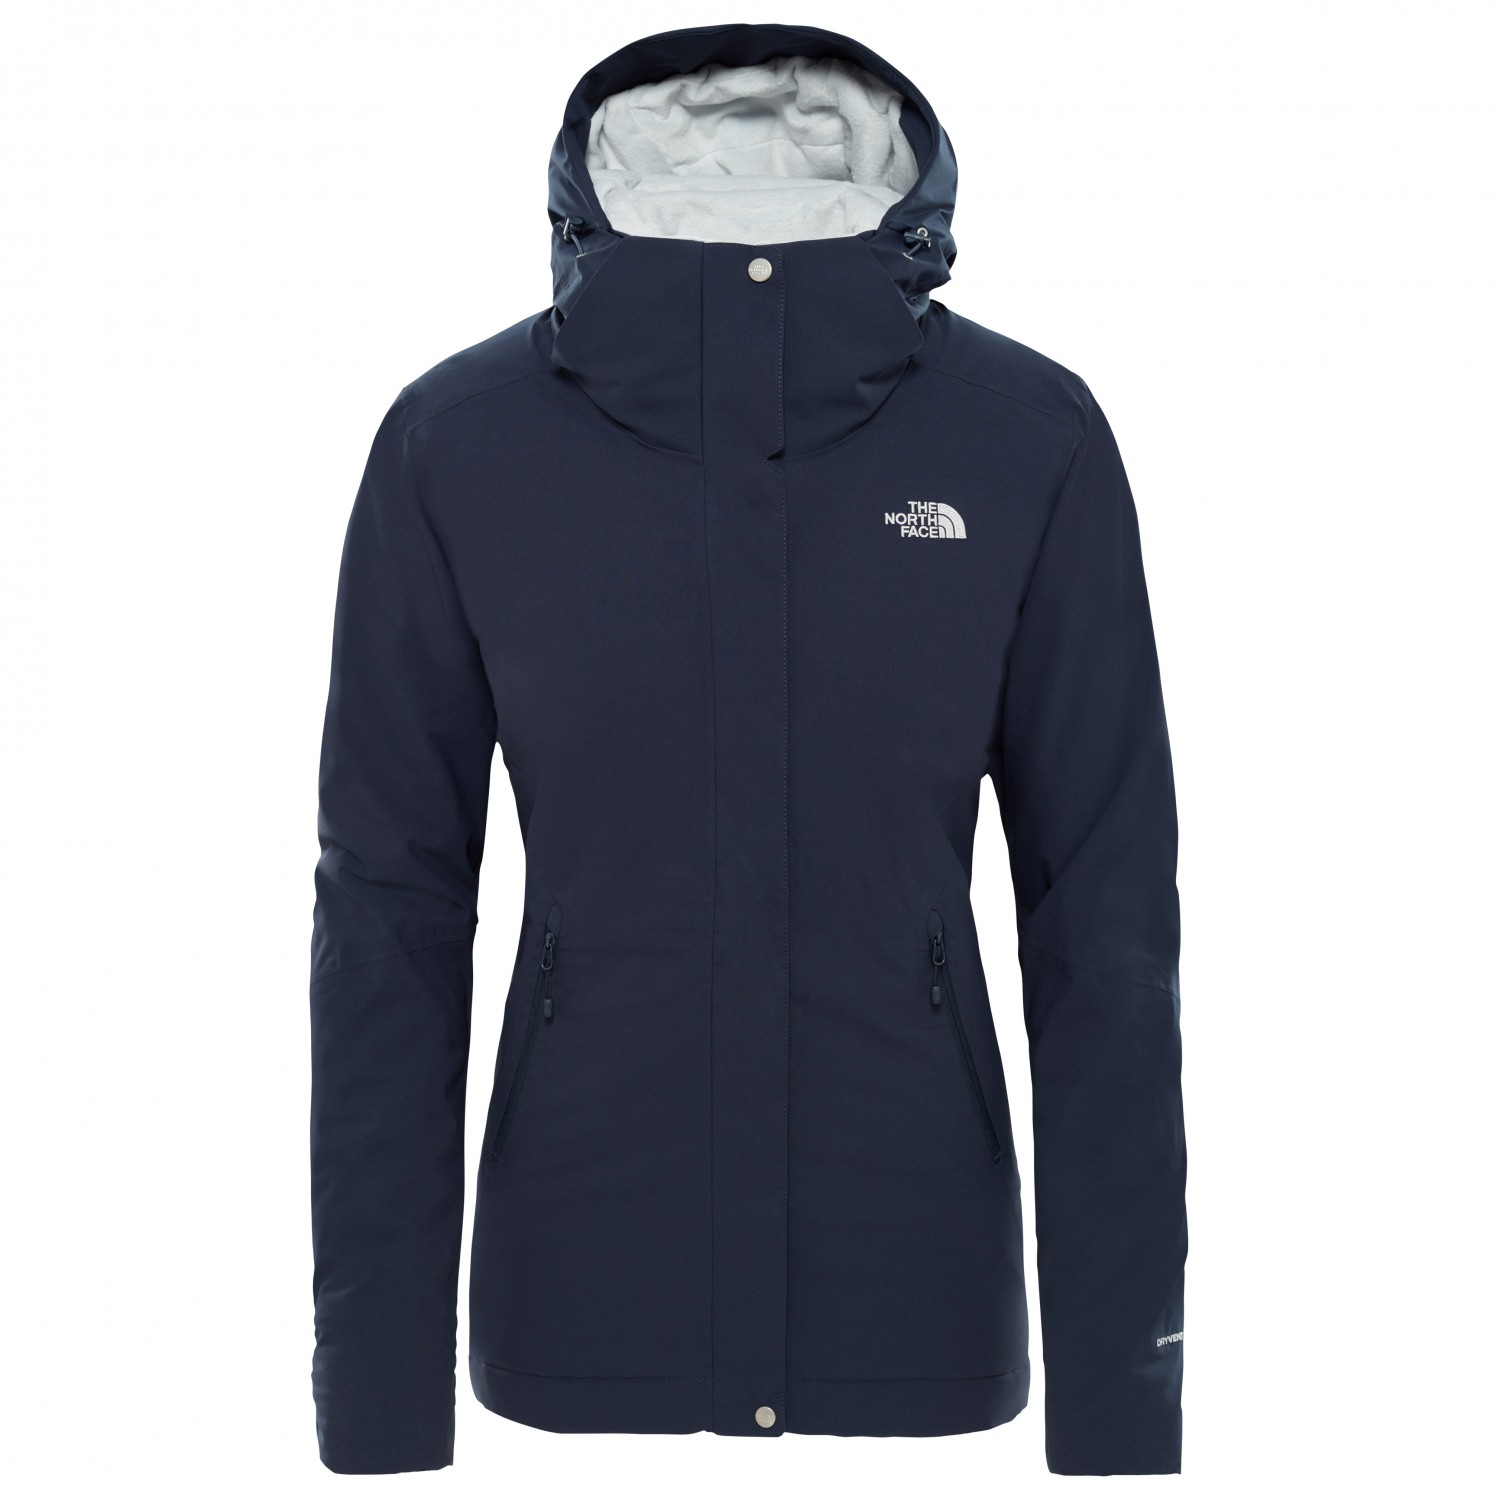 sale uk sale retailer picked up The North Face Inlux Insulated Jacket - Winter Jacket ...